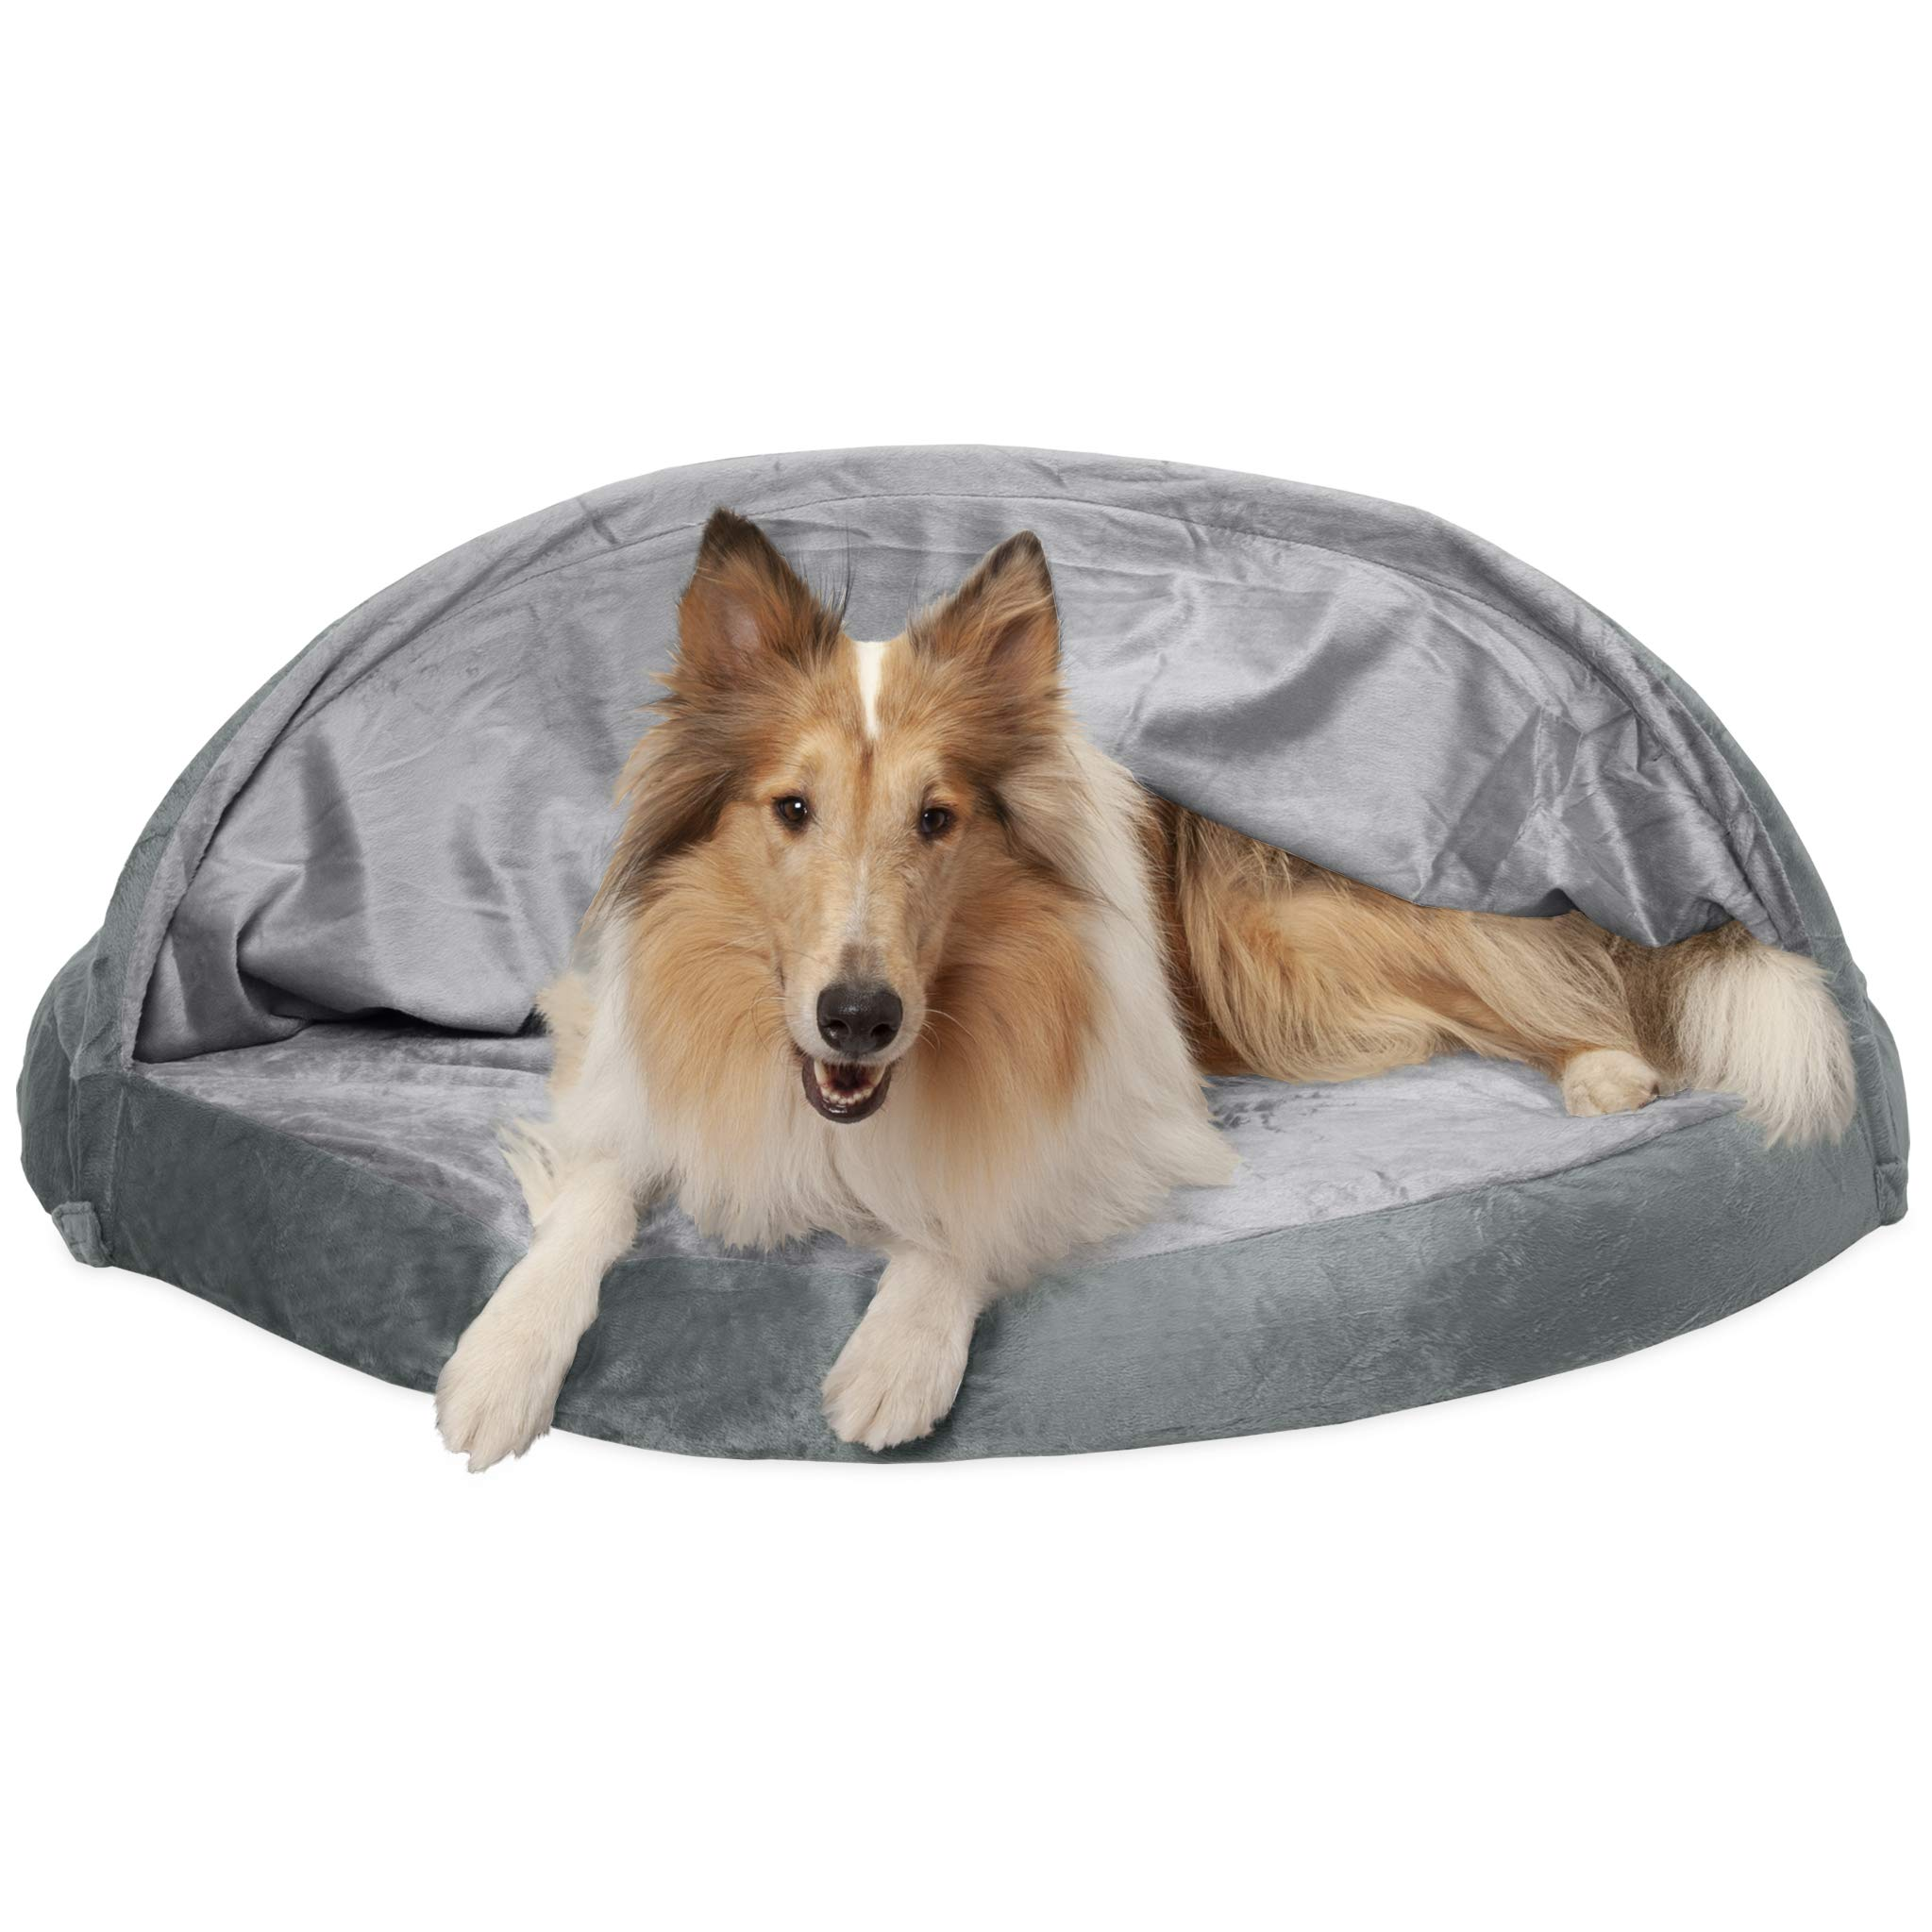 Furhaven Pet Dog Bed   Orthopedic Round Cuddle Nest Micro Velvet Snuggery Burrow Pet Bed for Dogs & Cats, Gray, 44-Inch